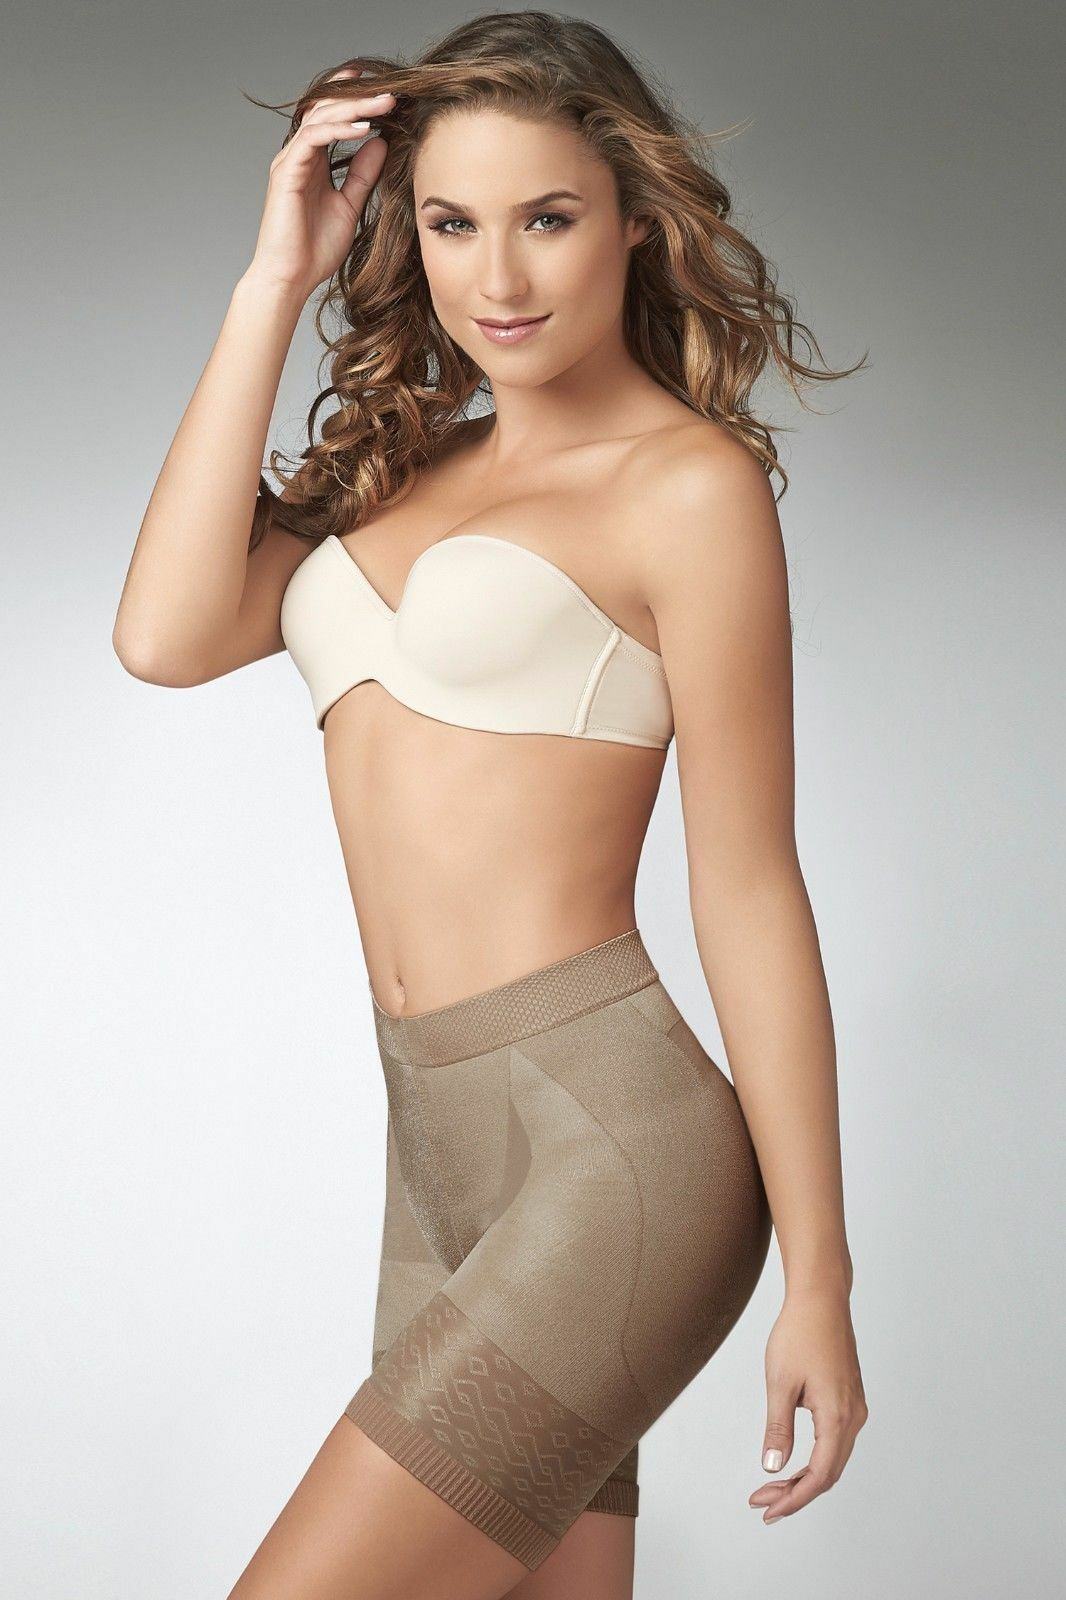 f1510a951fe Short Panty Body Shaper Skin Care Butt- Lifters Tummy Control Cocoon Ref.  1403 Small Beige for sale online